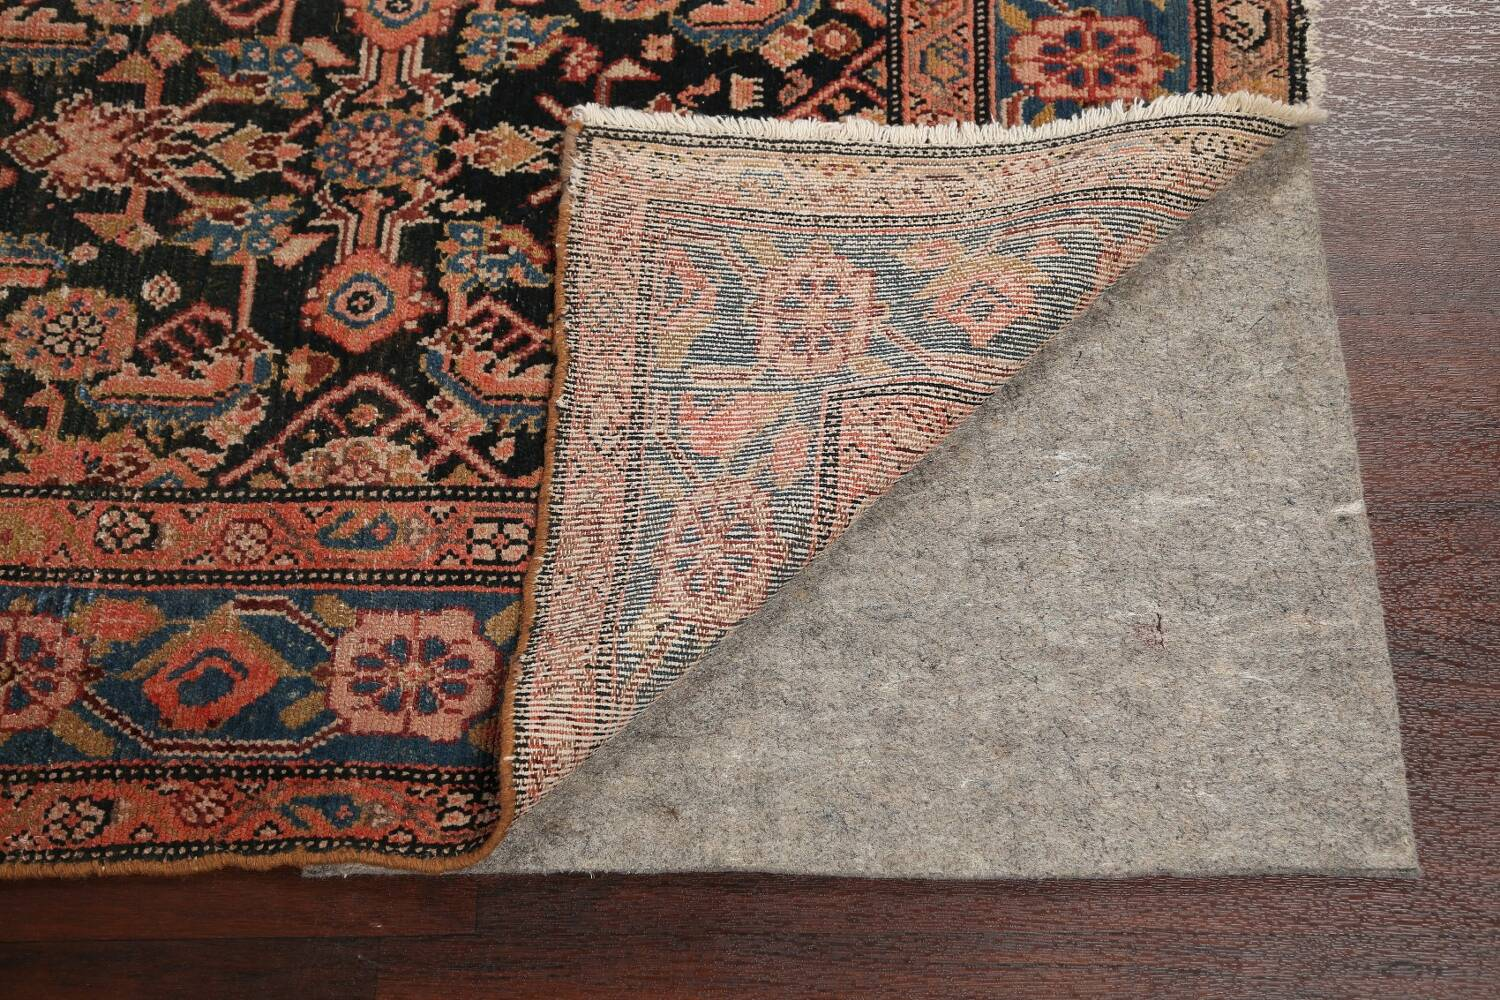 Pre-1900 Antique Malayer Persian Runner Rug 6x16 image 7